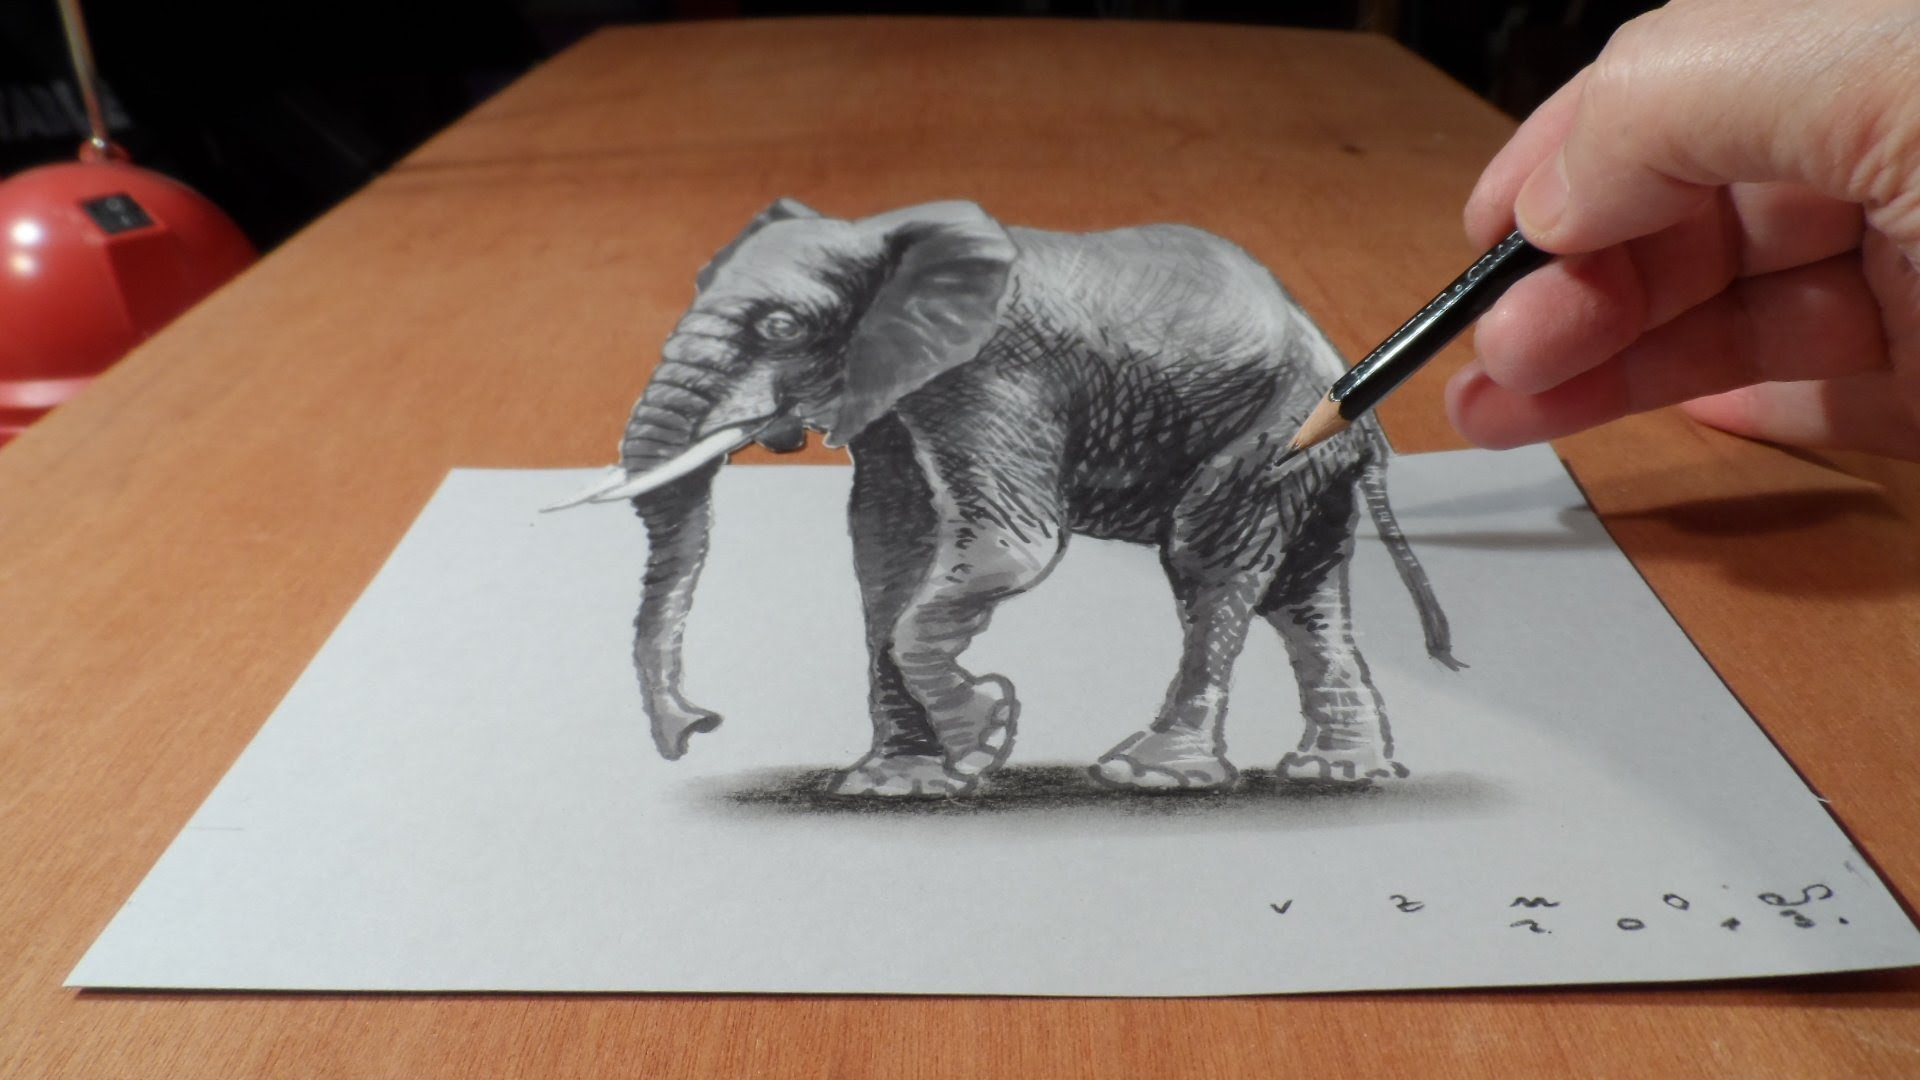 Drawn 3d art On YouTube 3D Elephant Drawing